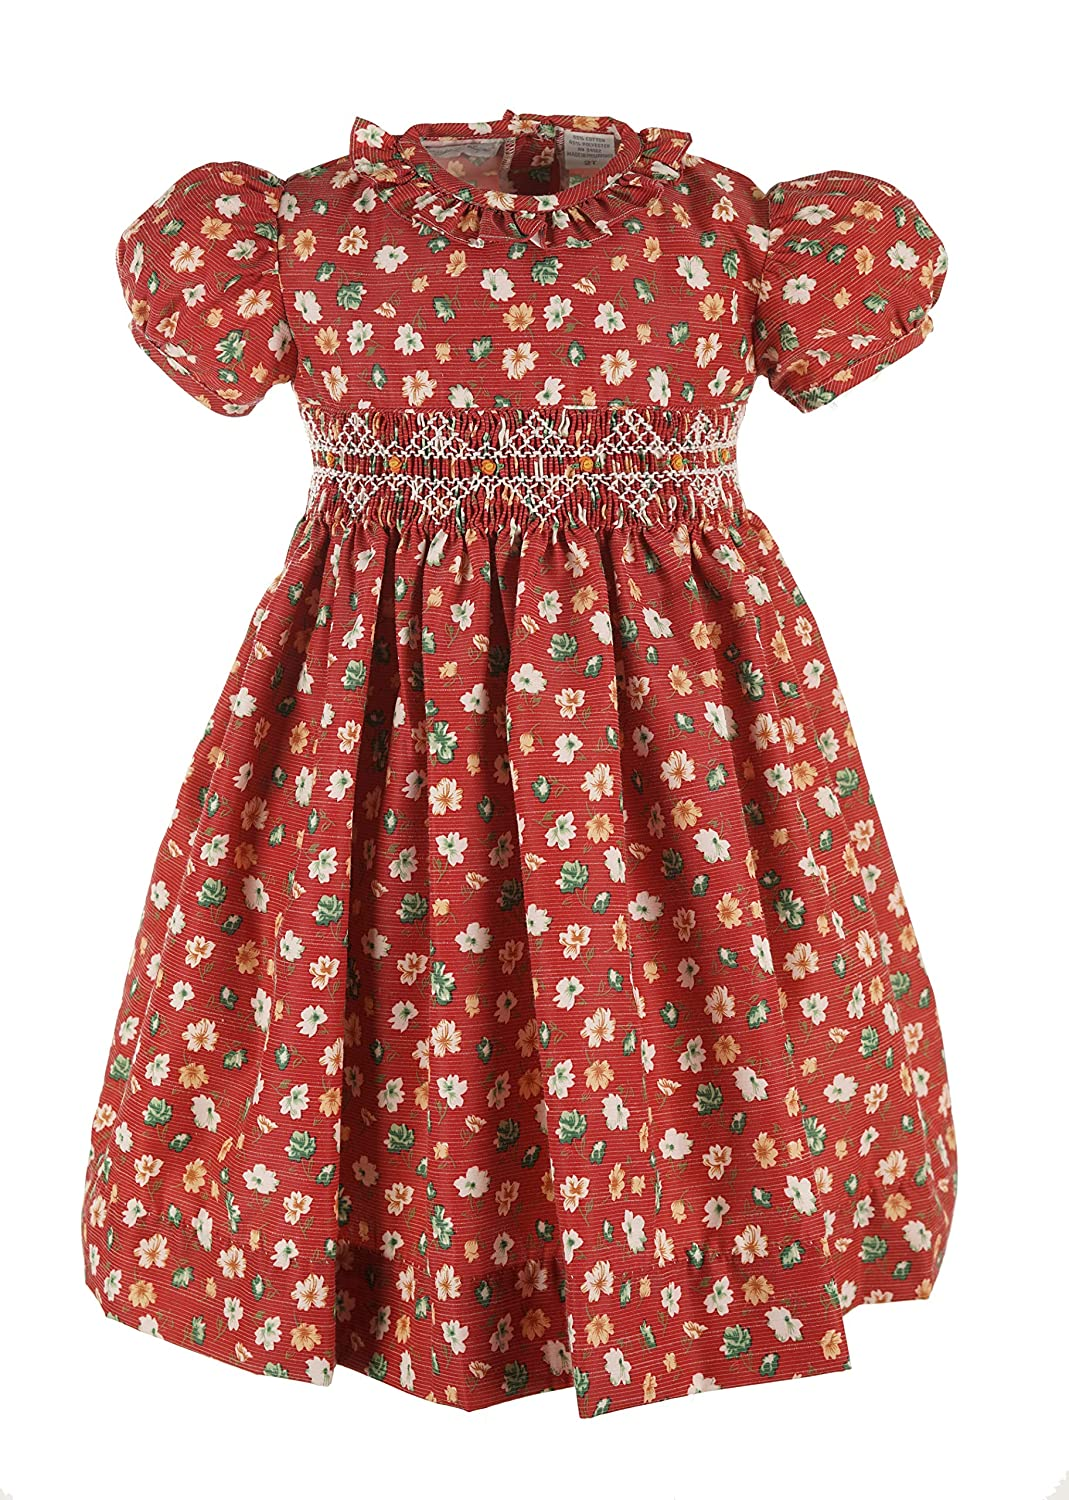 1930s Childrens Fashion: Girls, Boys, Toddler, Baby Costumes Carriage Boutique Girls Red Waisted Yoke Dress - Floral Winter Short Sleeve $56.00 AT vintagedancer.com